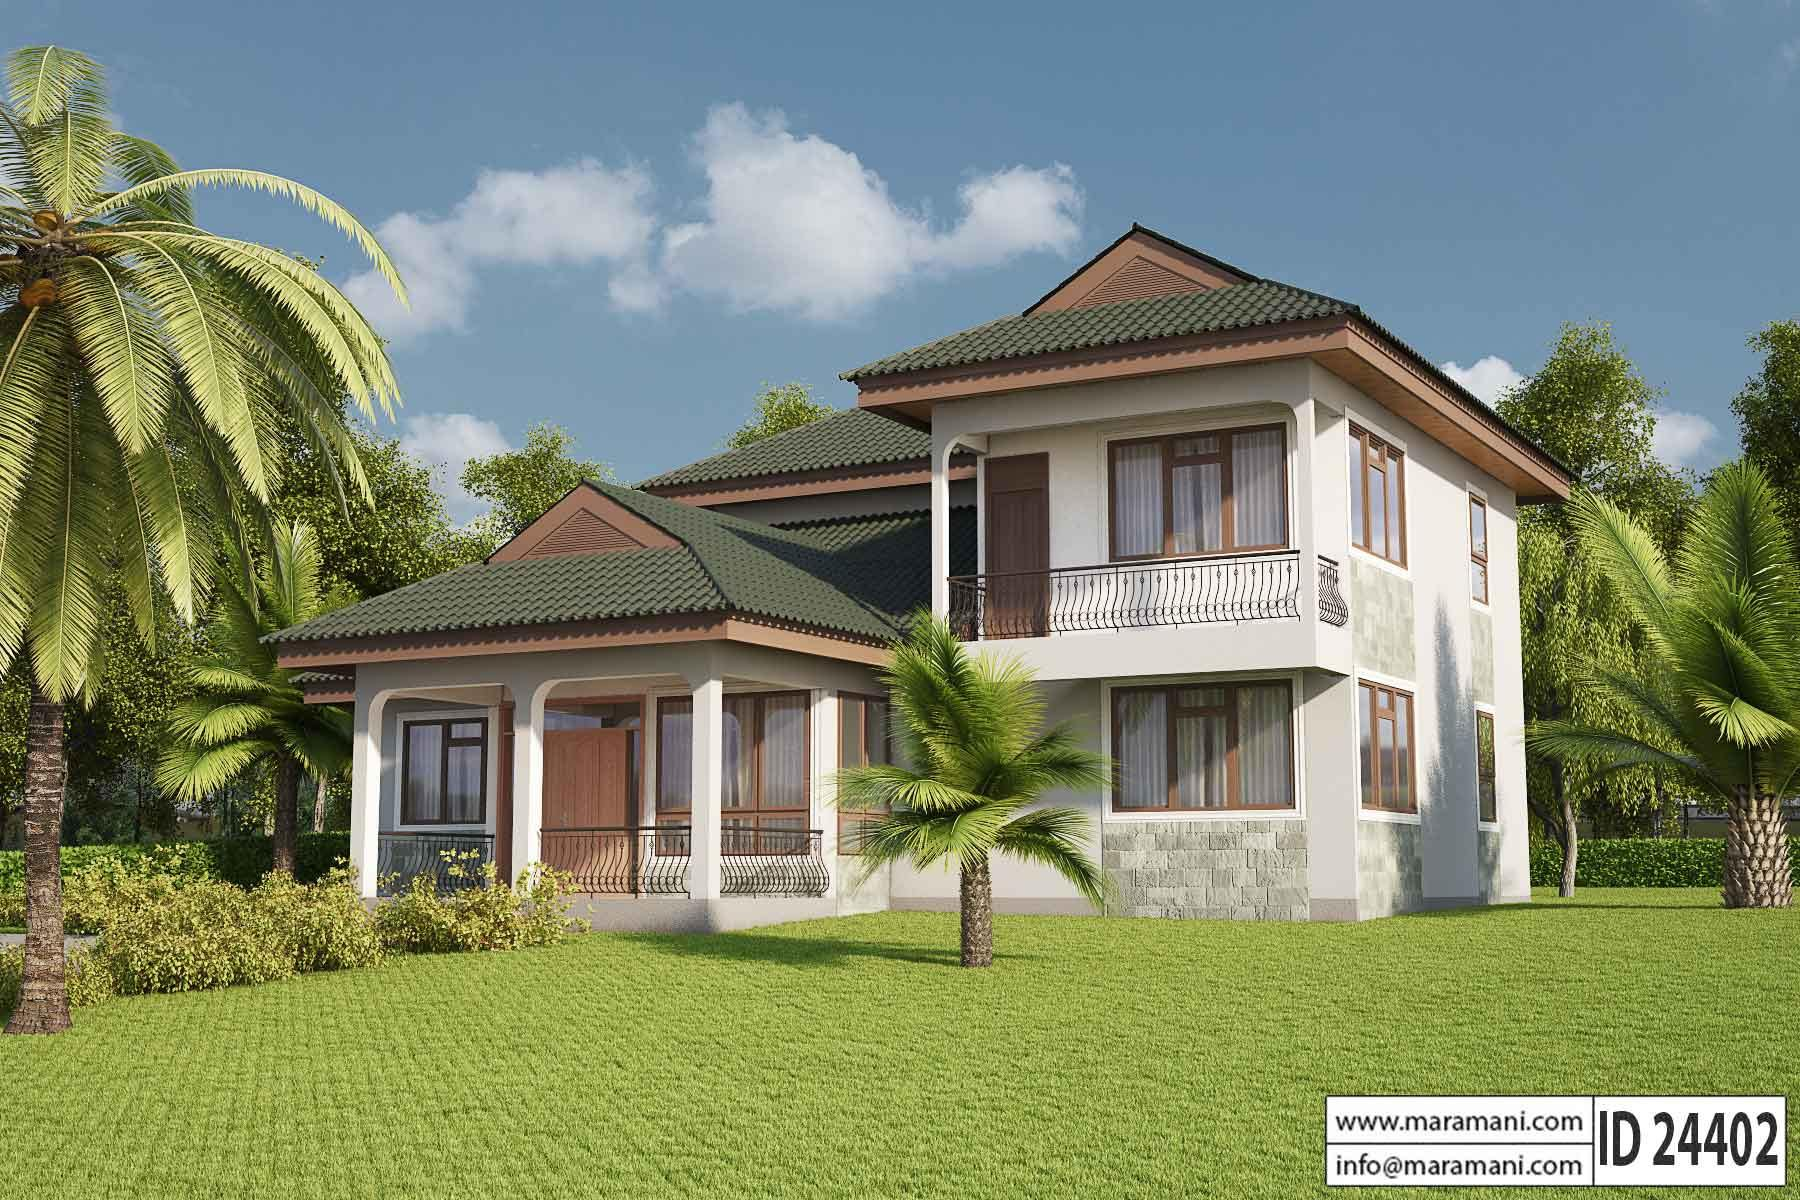 Perspective 1 cc5b6028 95d4 40a2 b5c9 6dcf411261e3 - 27+ 4 Bedroom Small House Design Pics